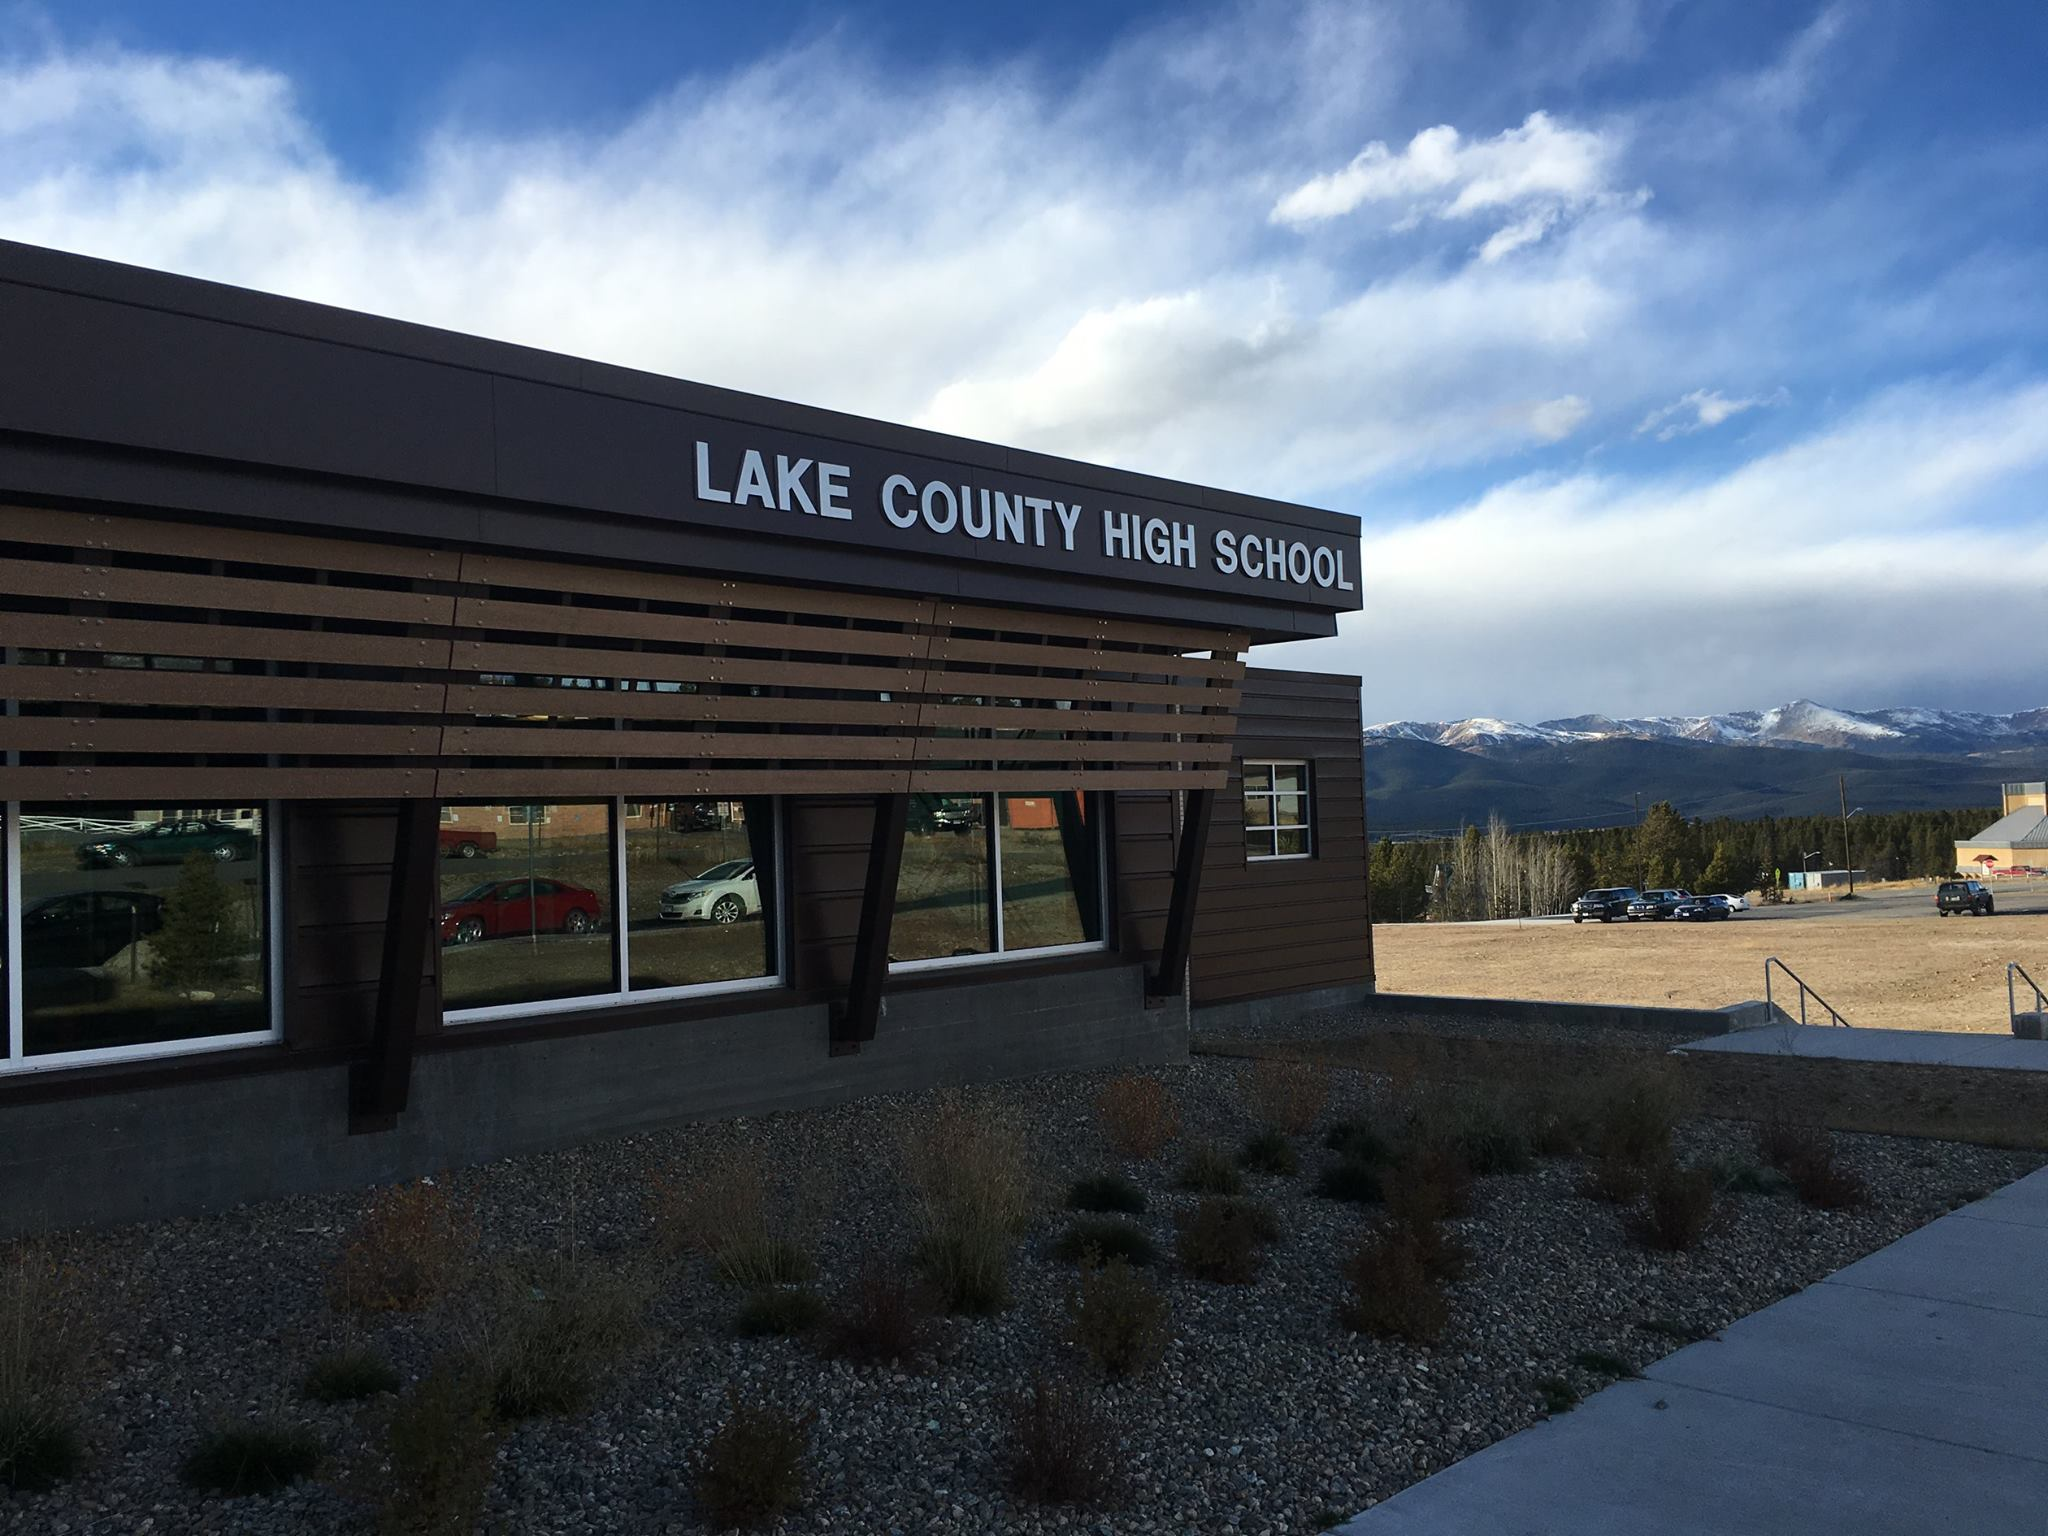 Lake County High School